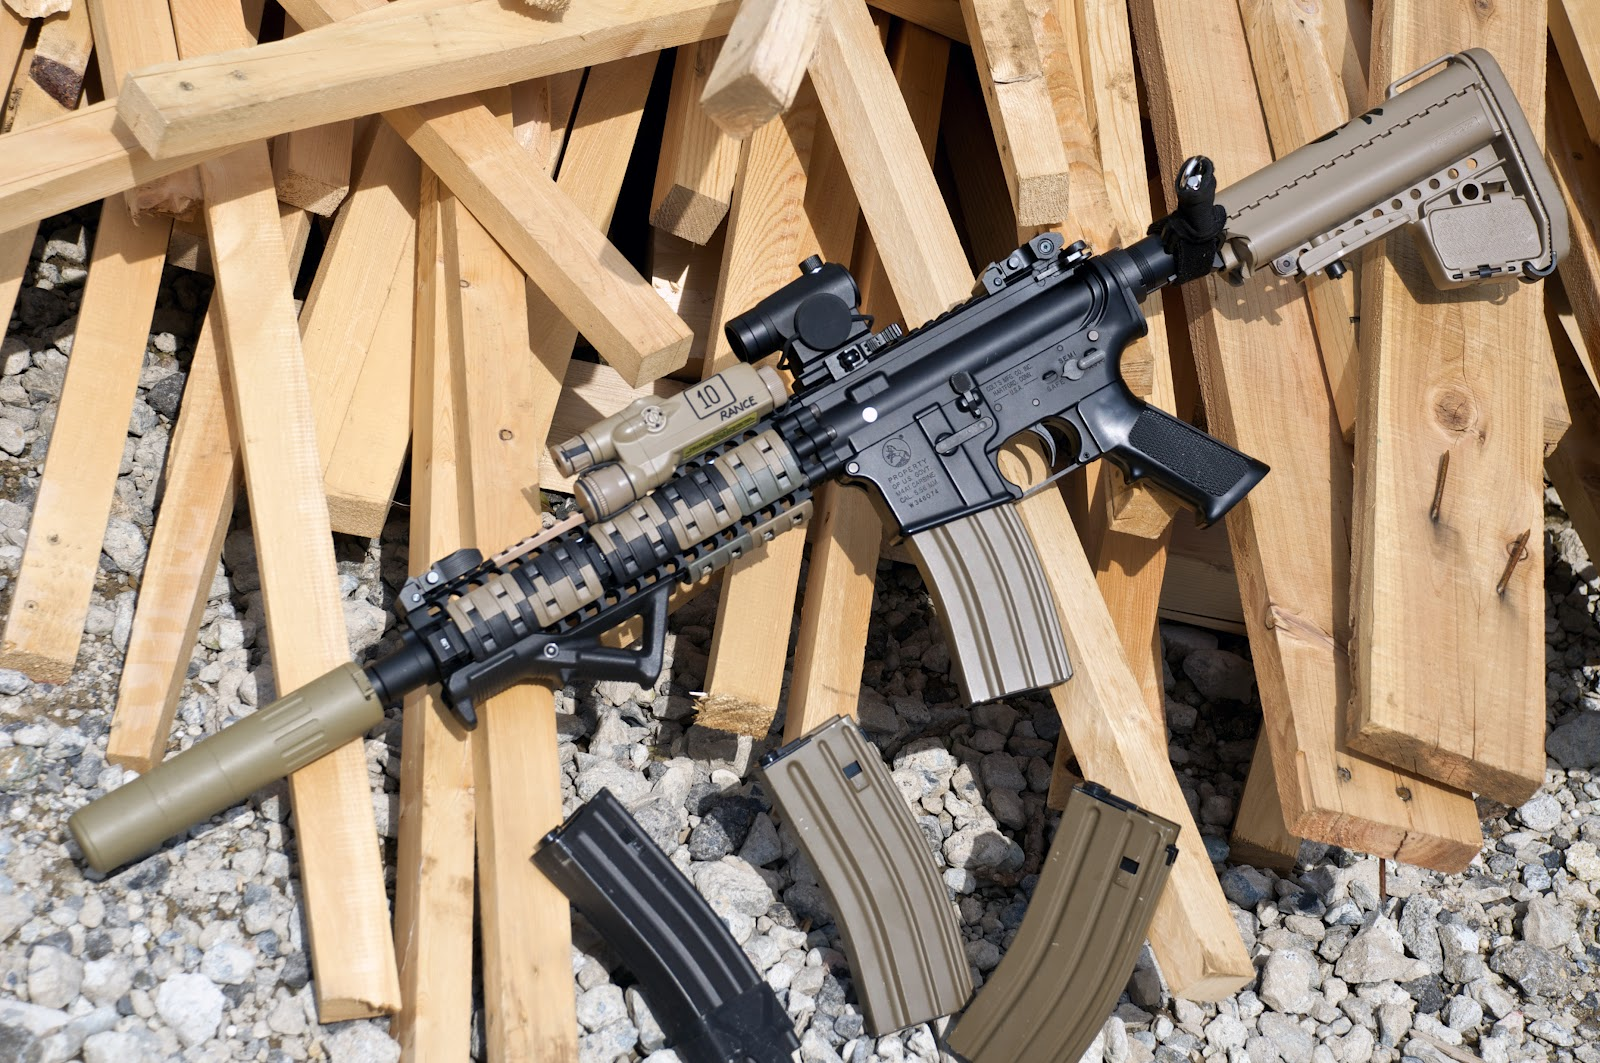 Wired C.A.T.S.: Magpul-inspired RECCE Rifle